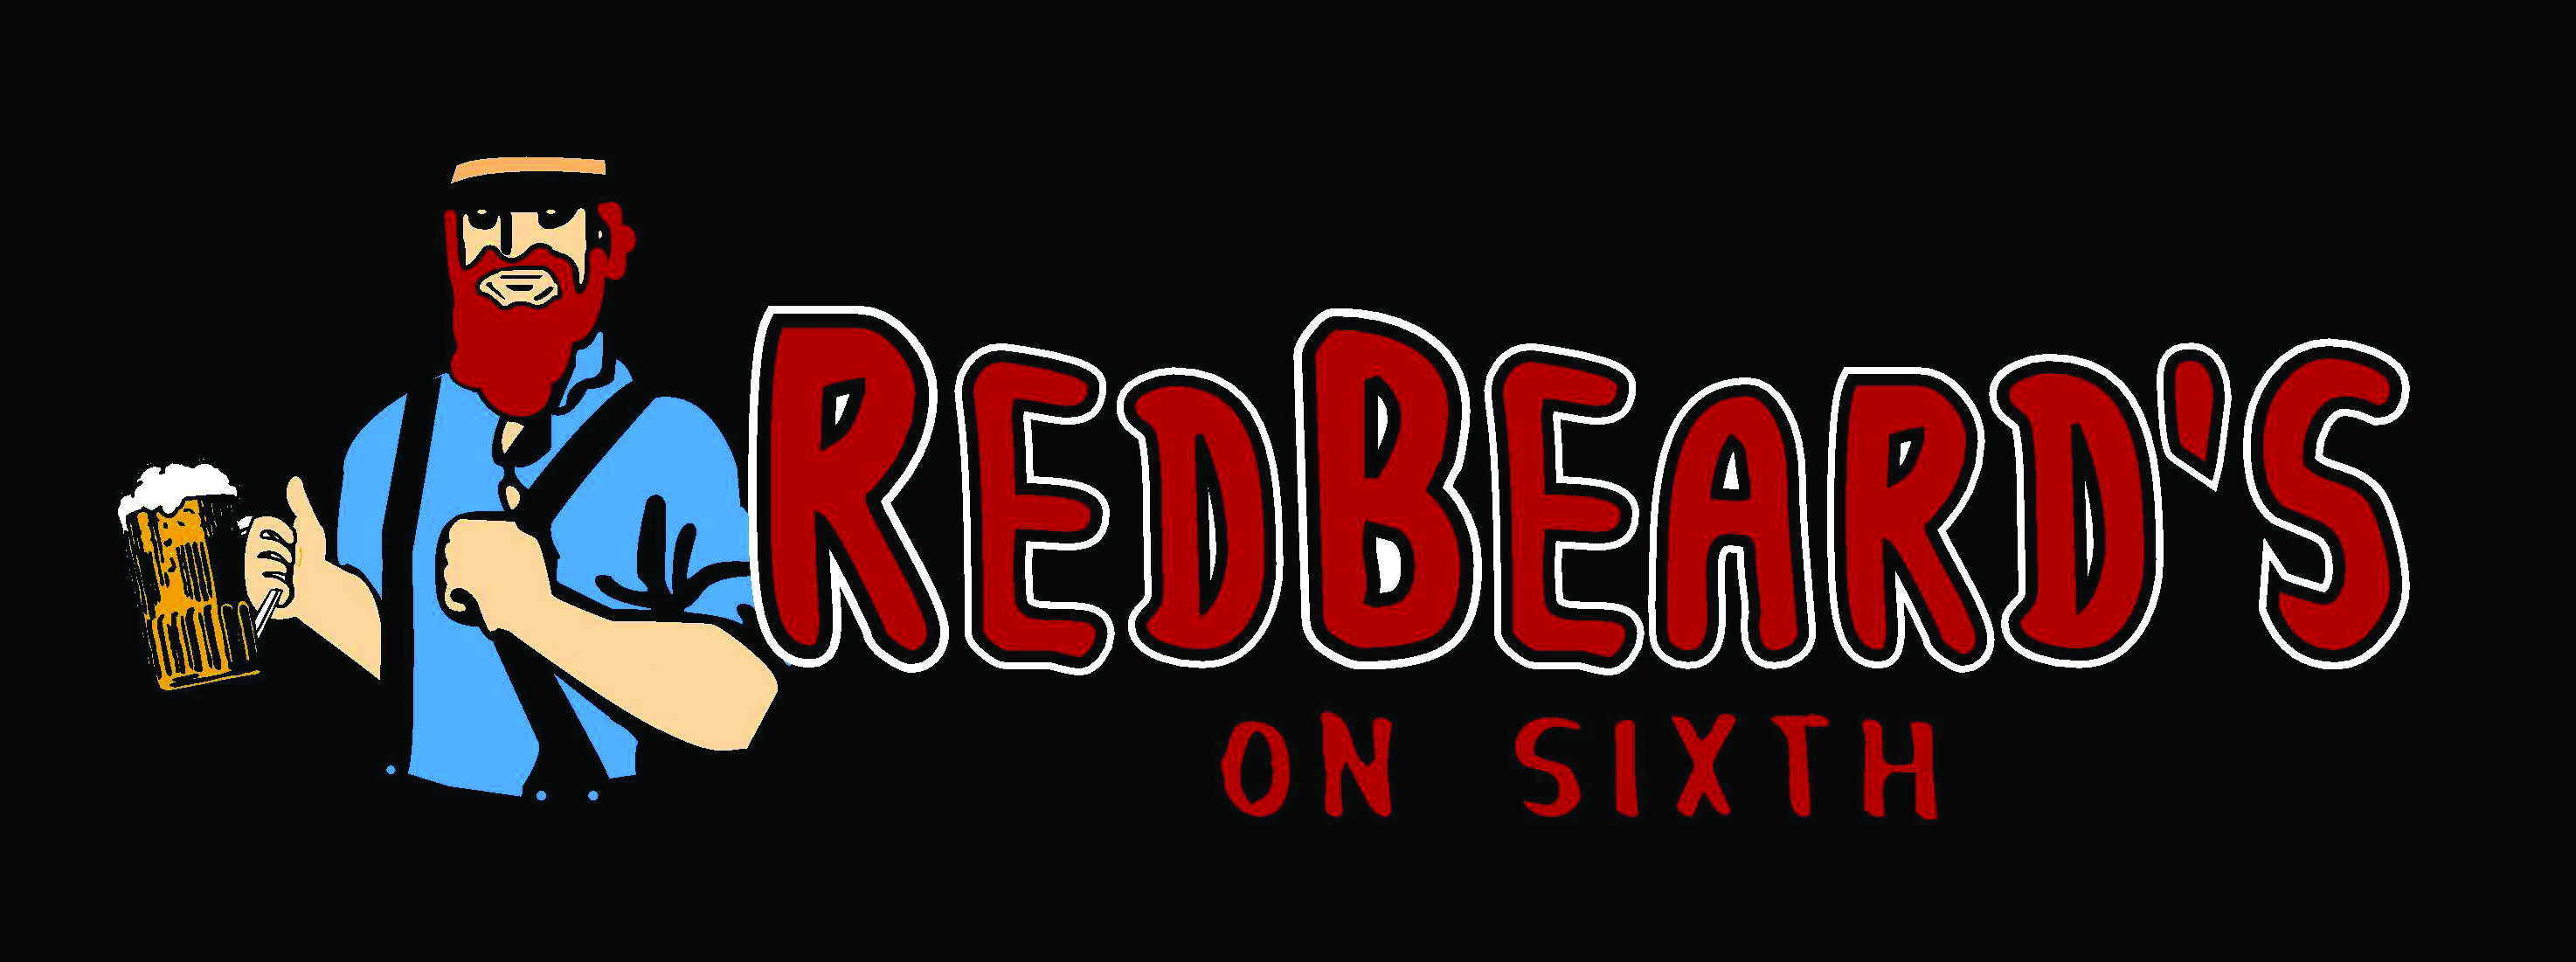 Redbeard's on Sixth logo